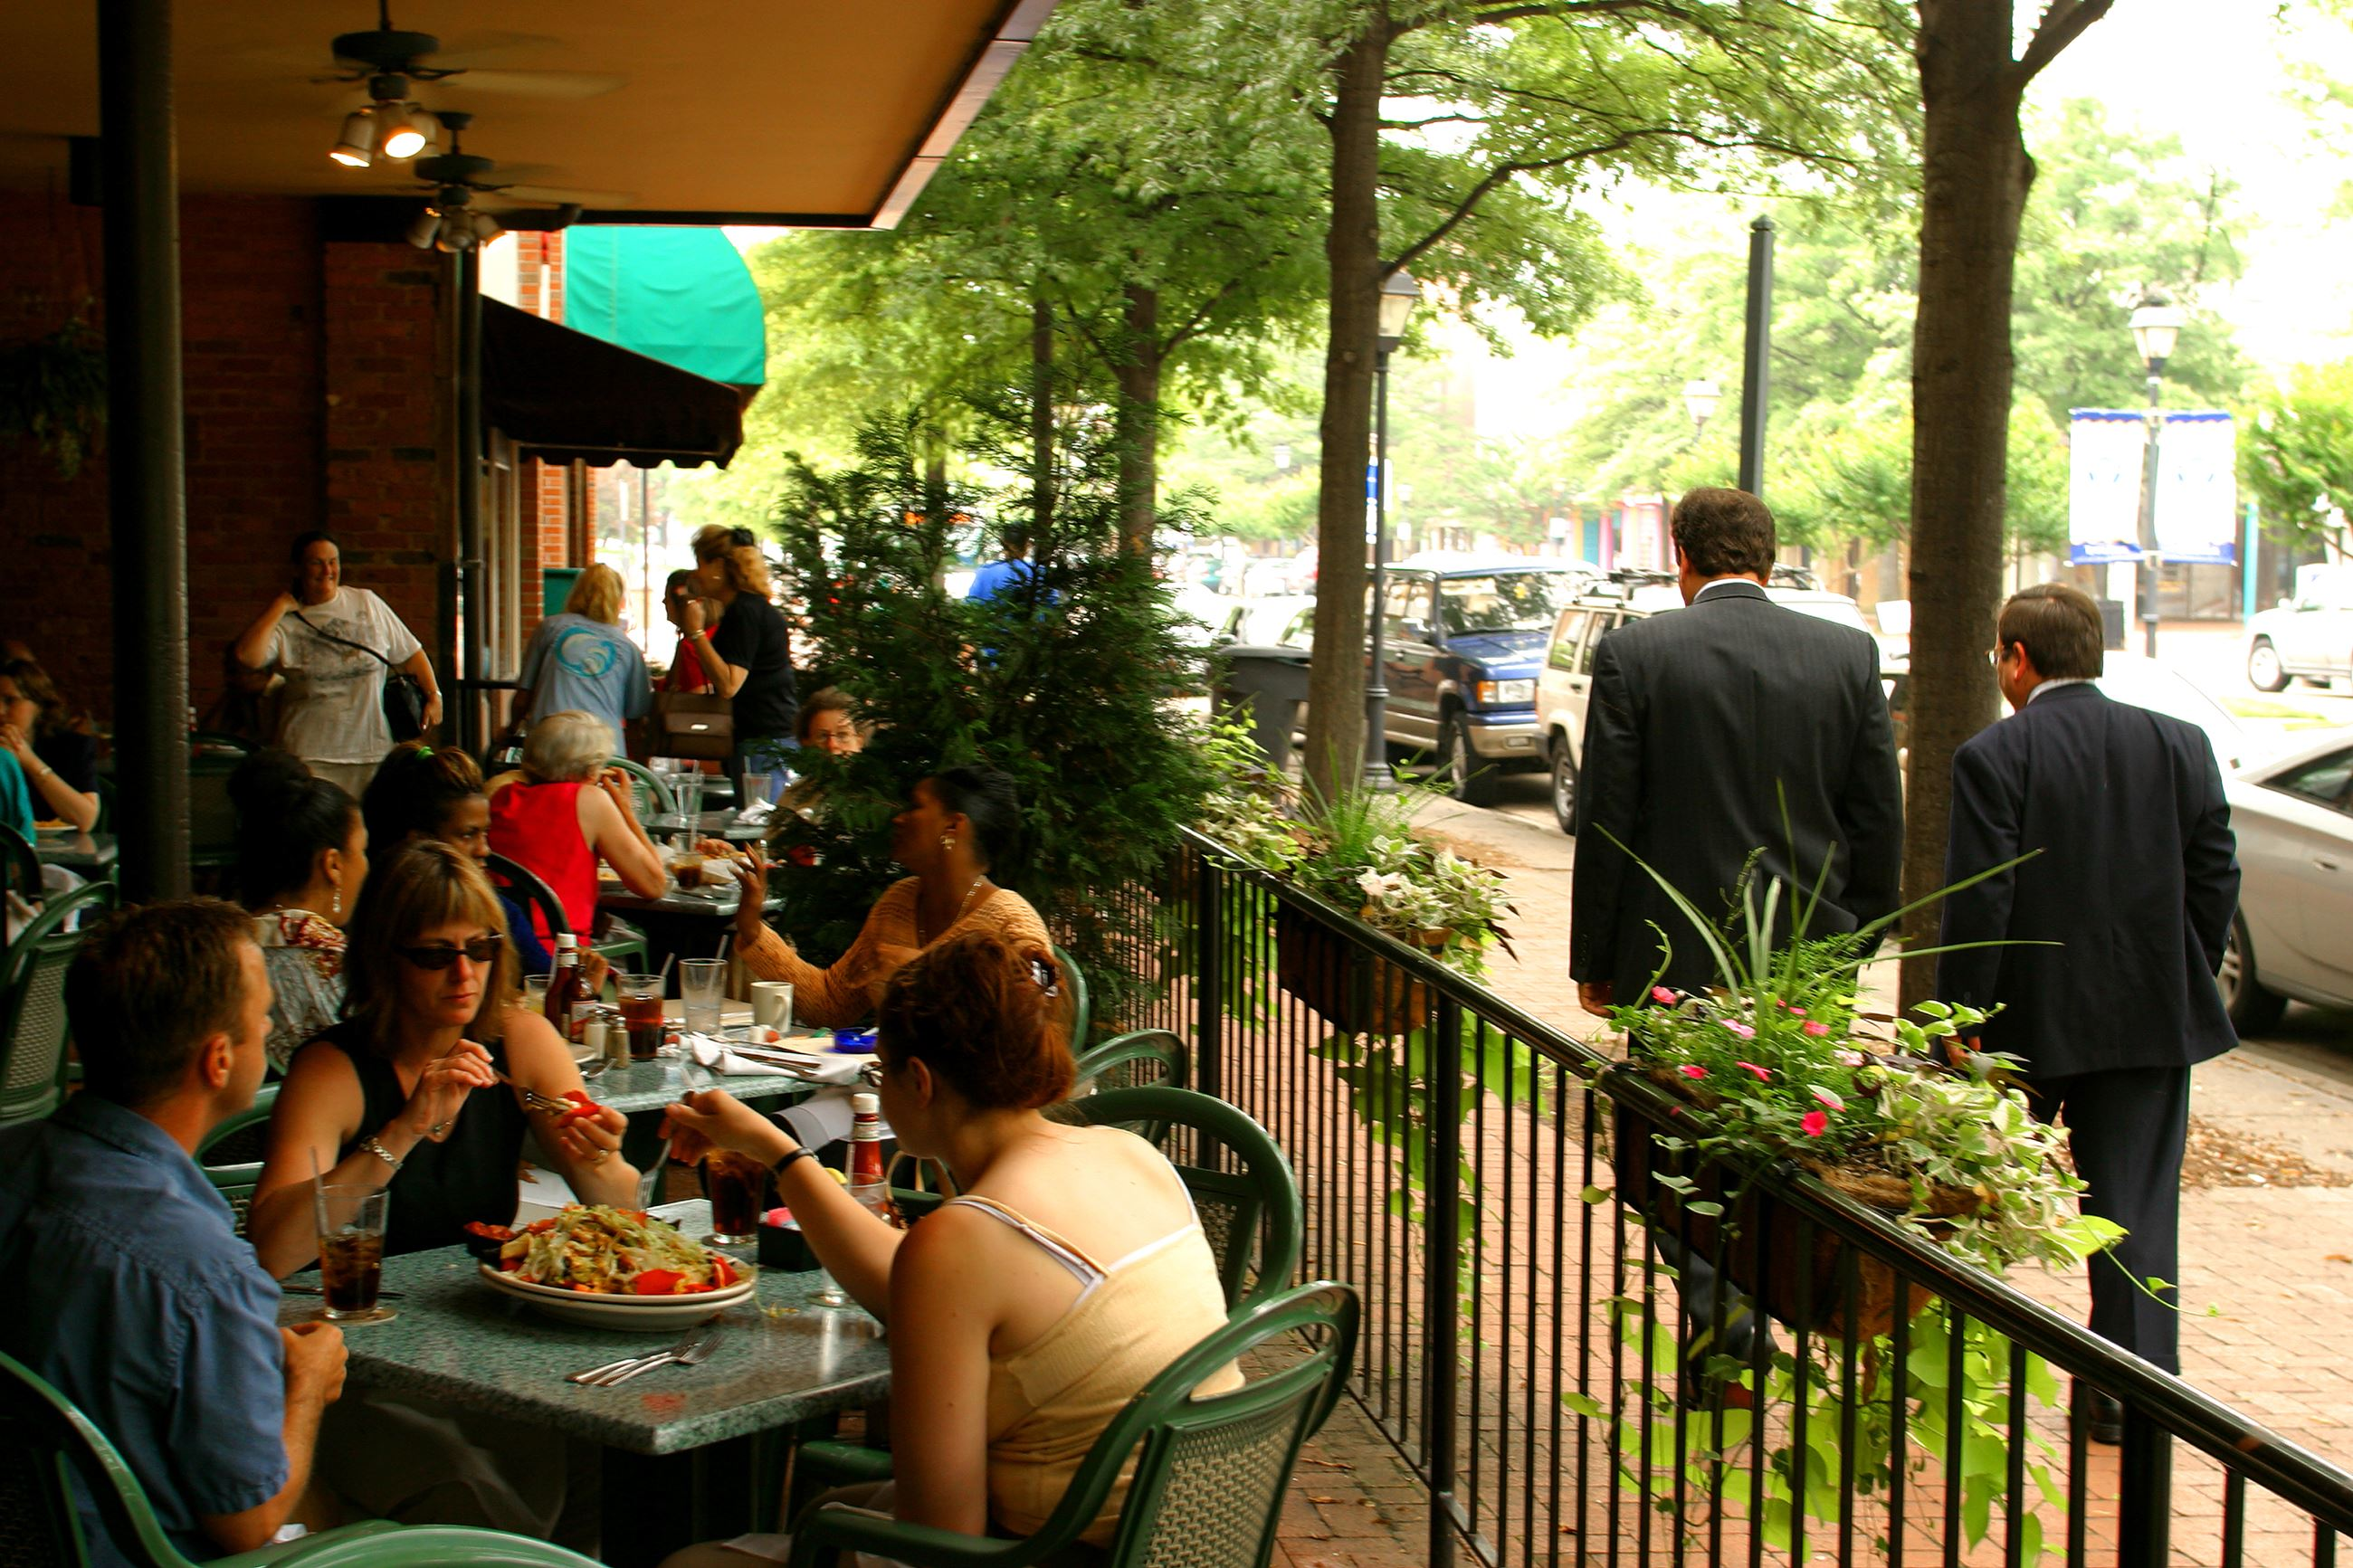 Many diners eating at outside tables